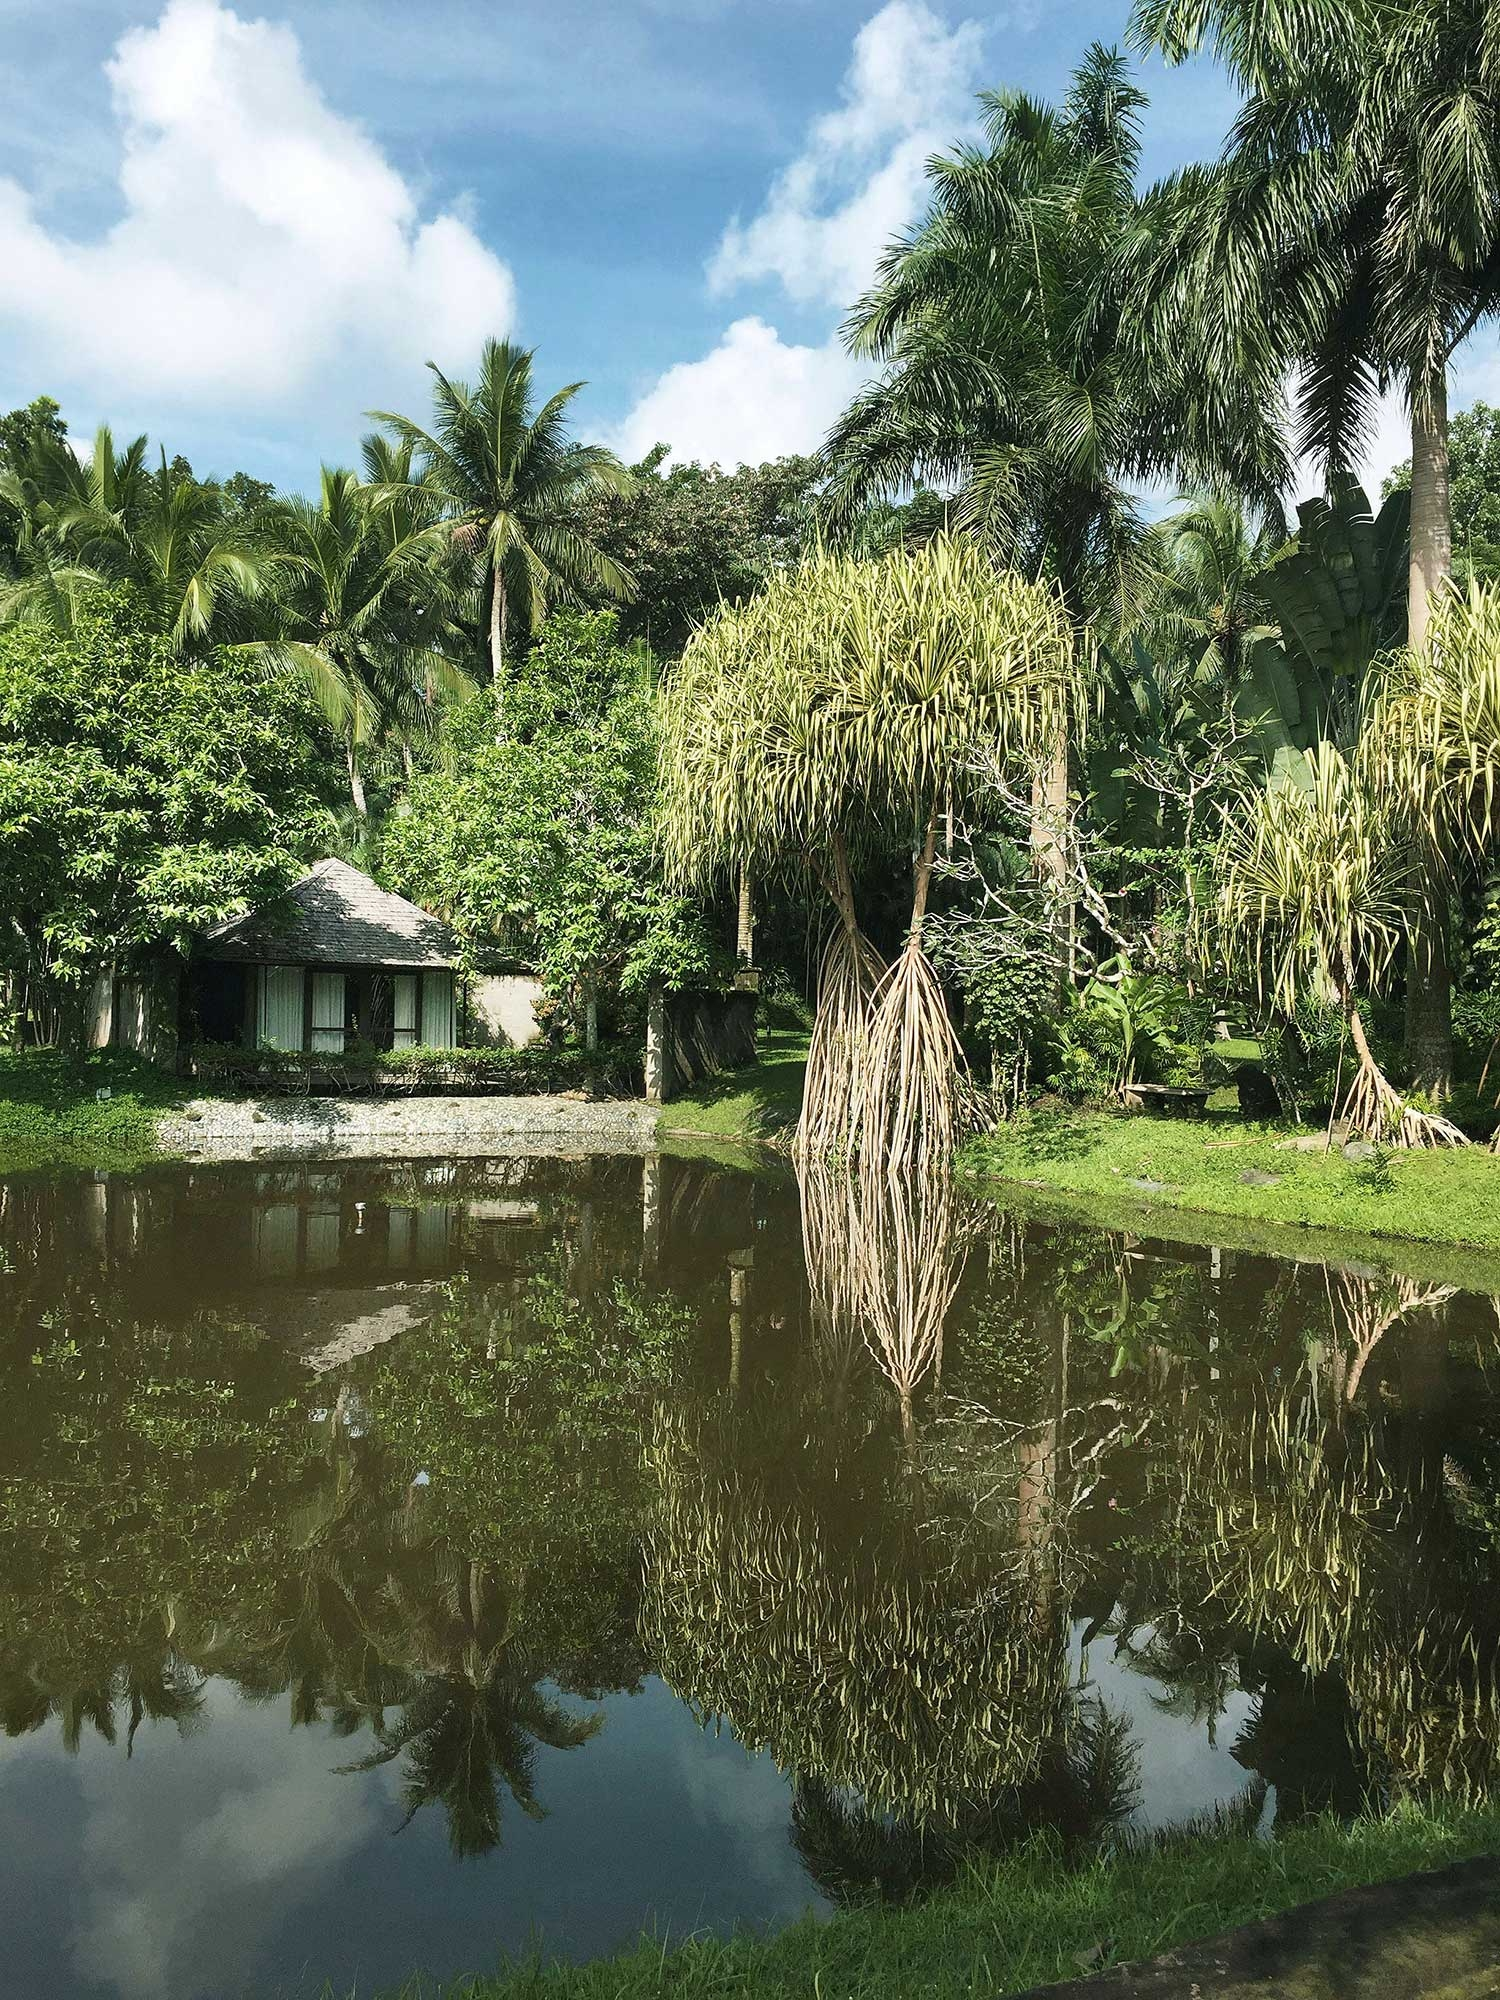 A small lagoon in the garden with a hut and trees by the water's edge